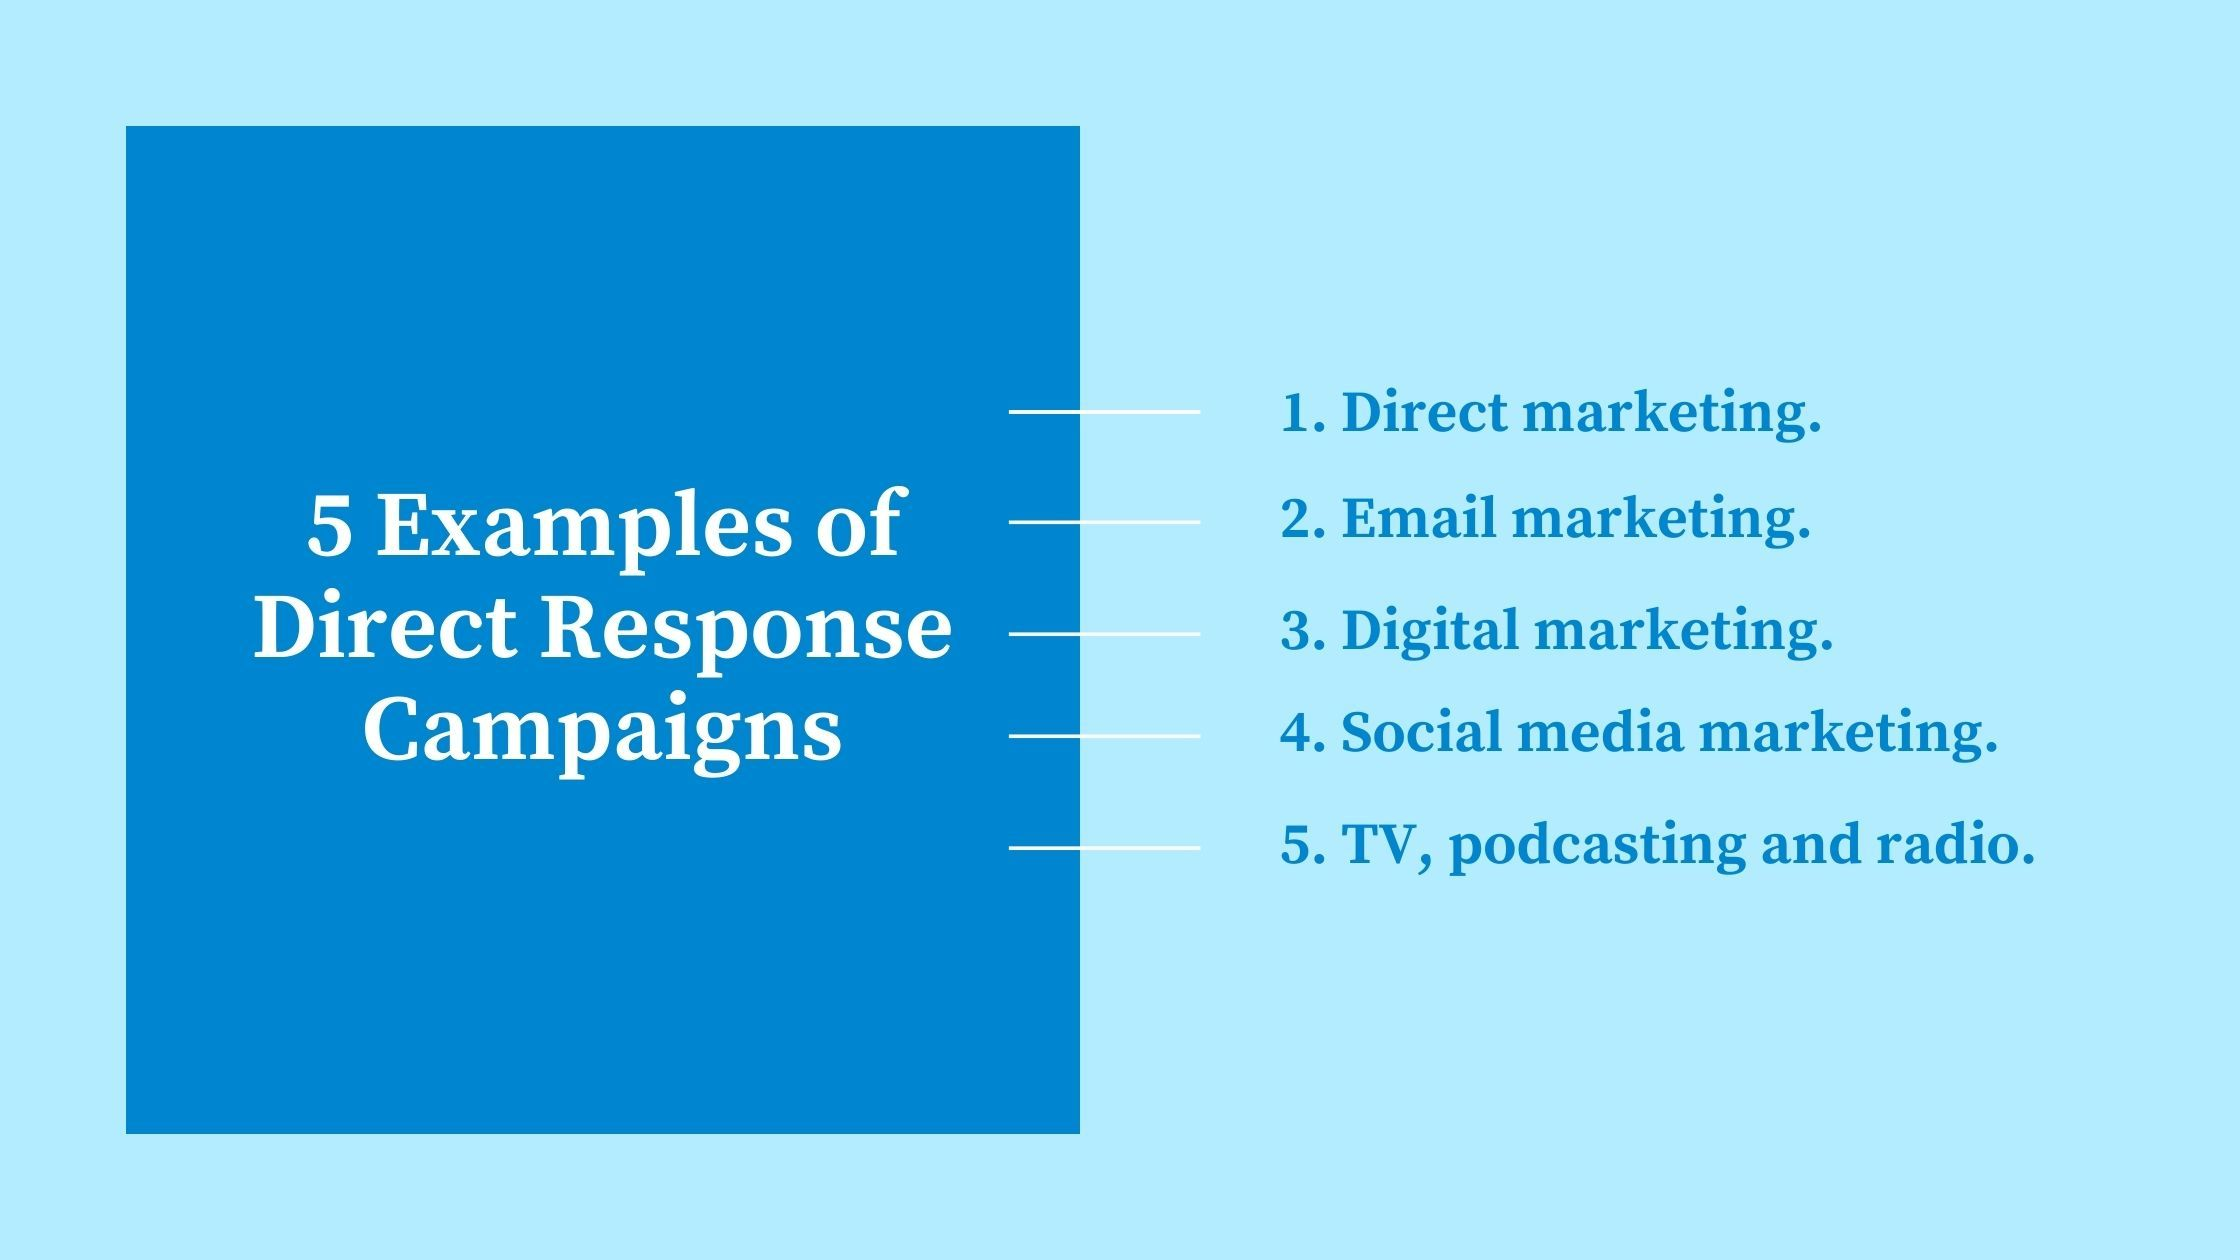 5 Effective Media Channels for Direct Response Campaigns